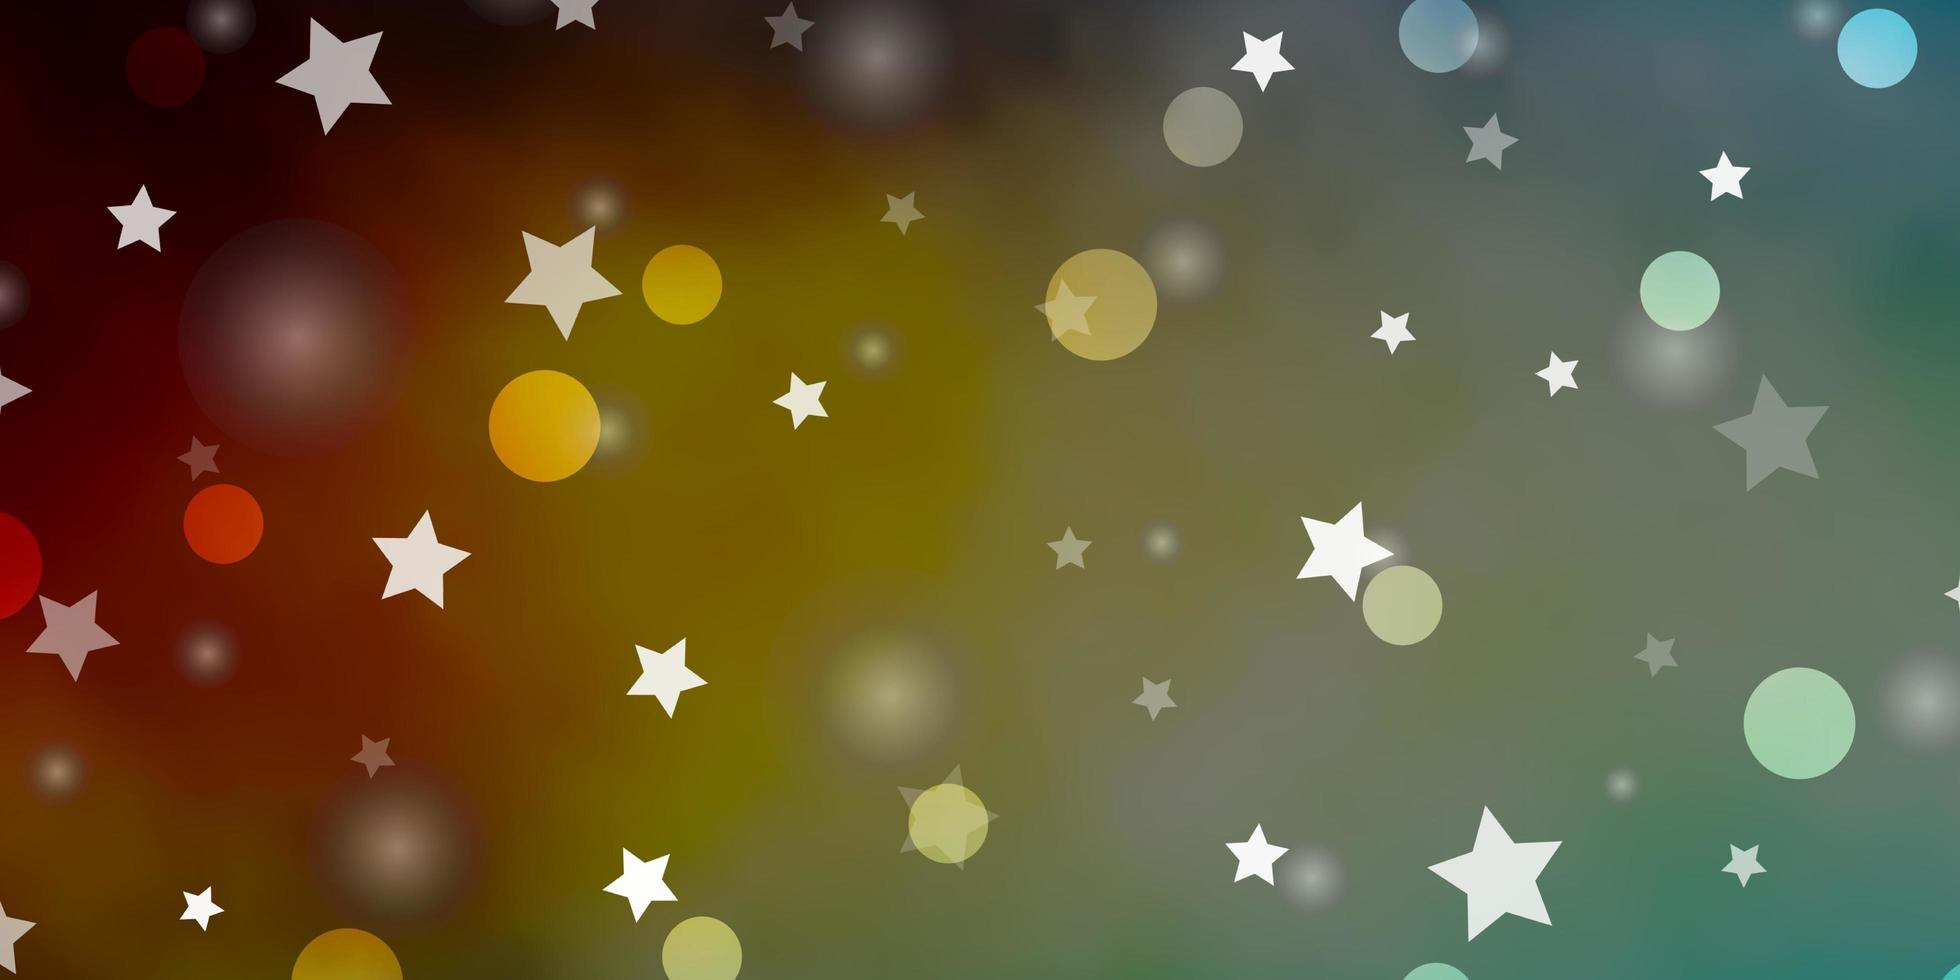 Red, Yellow background with circles, stars. vector